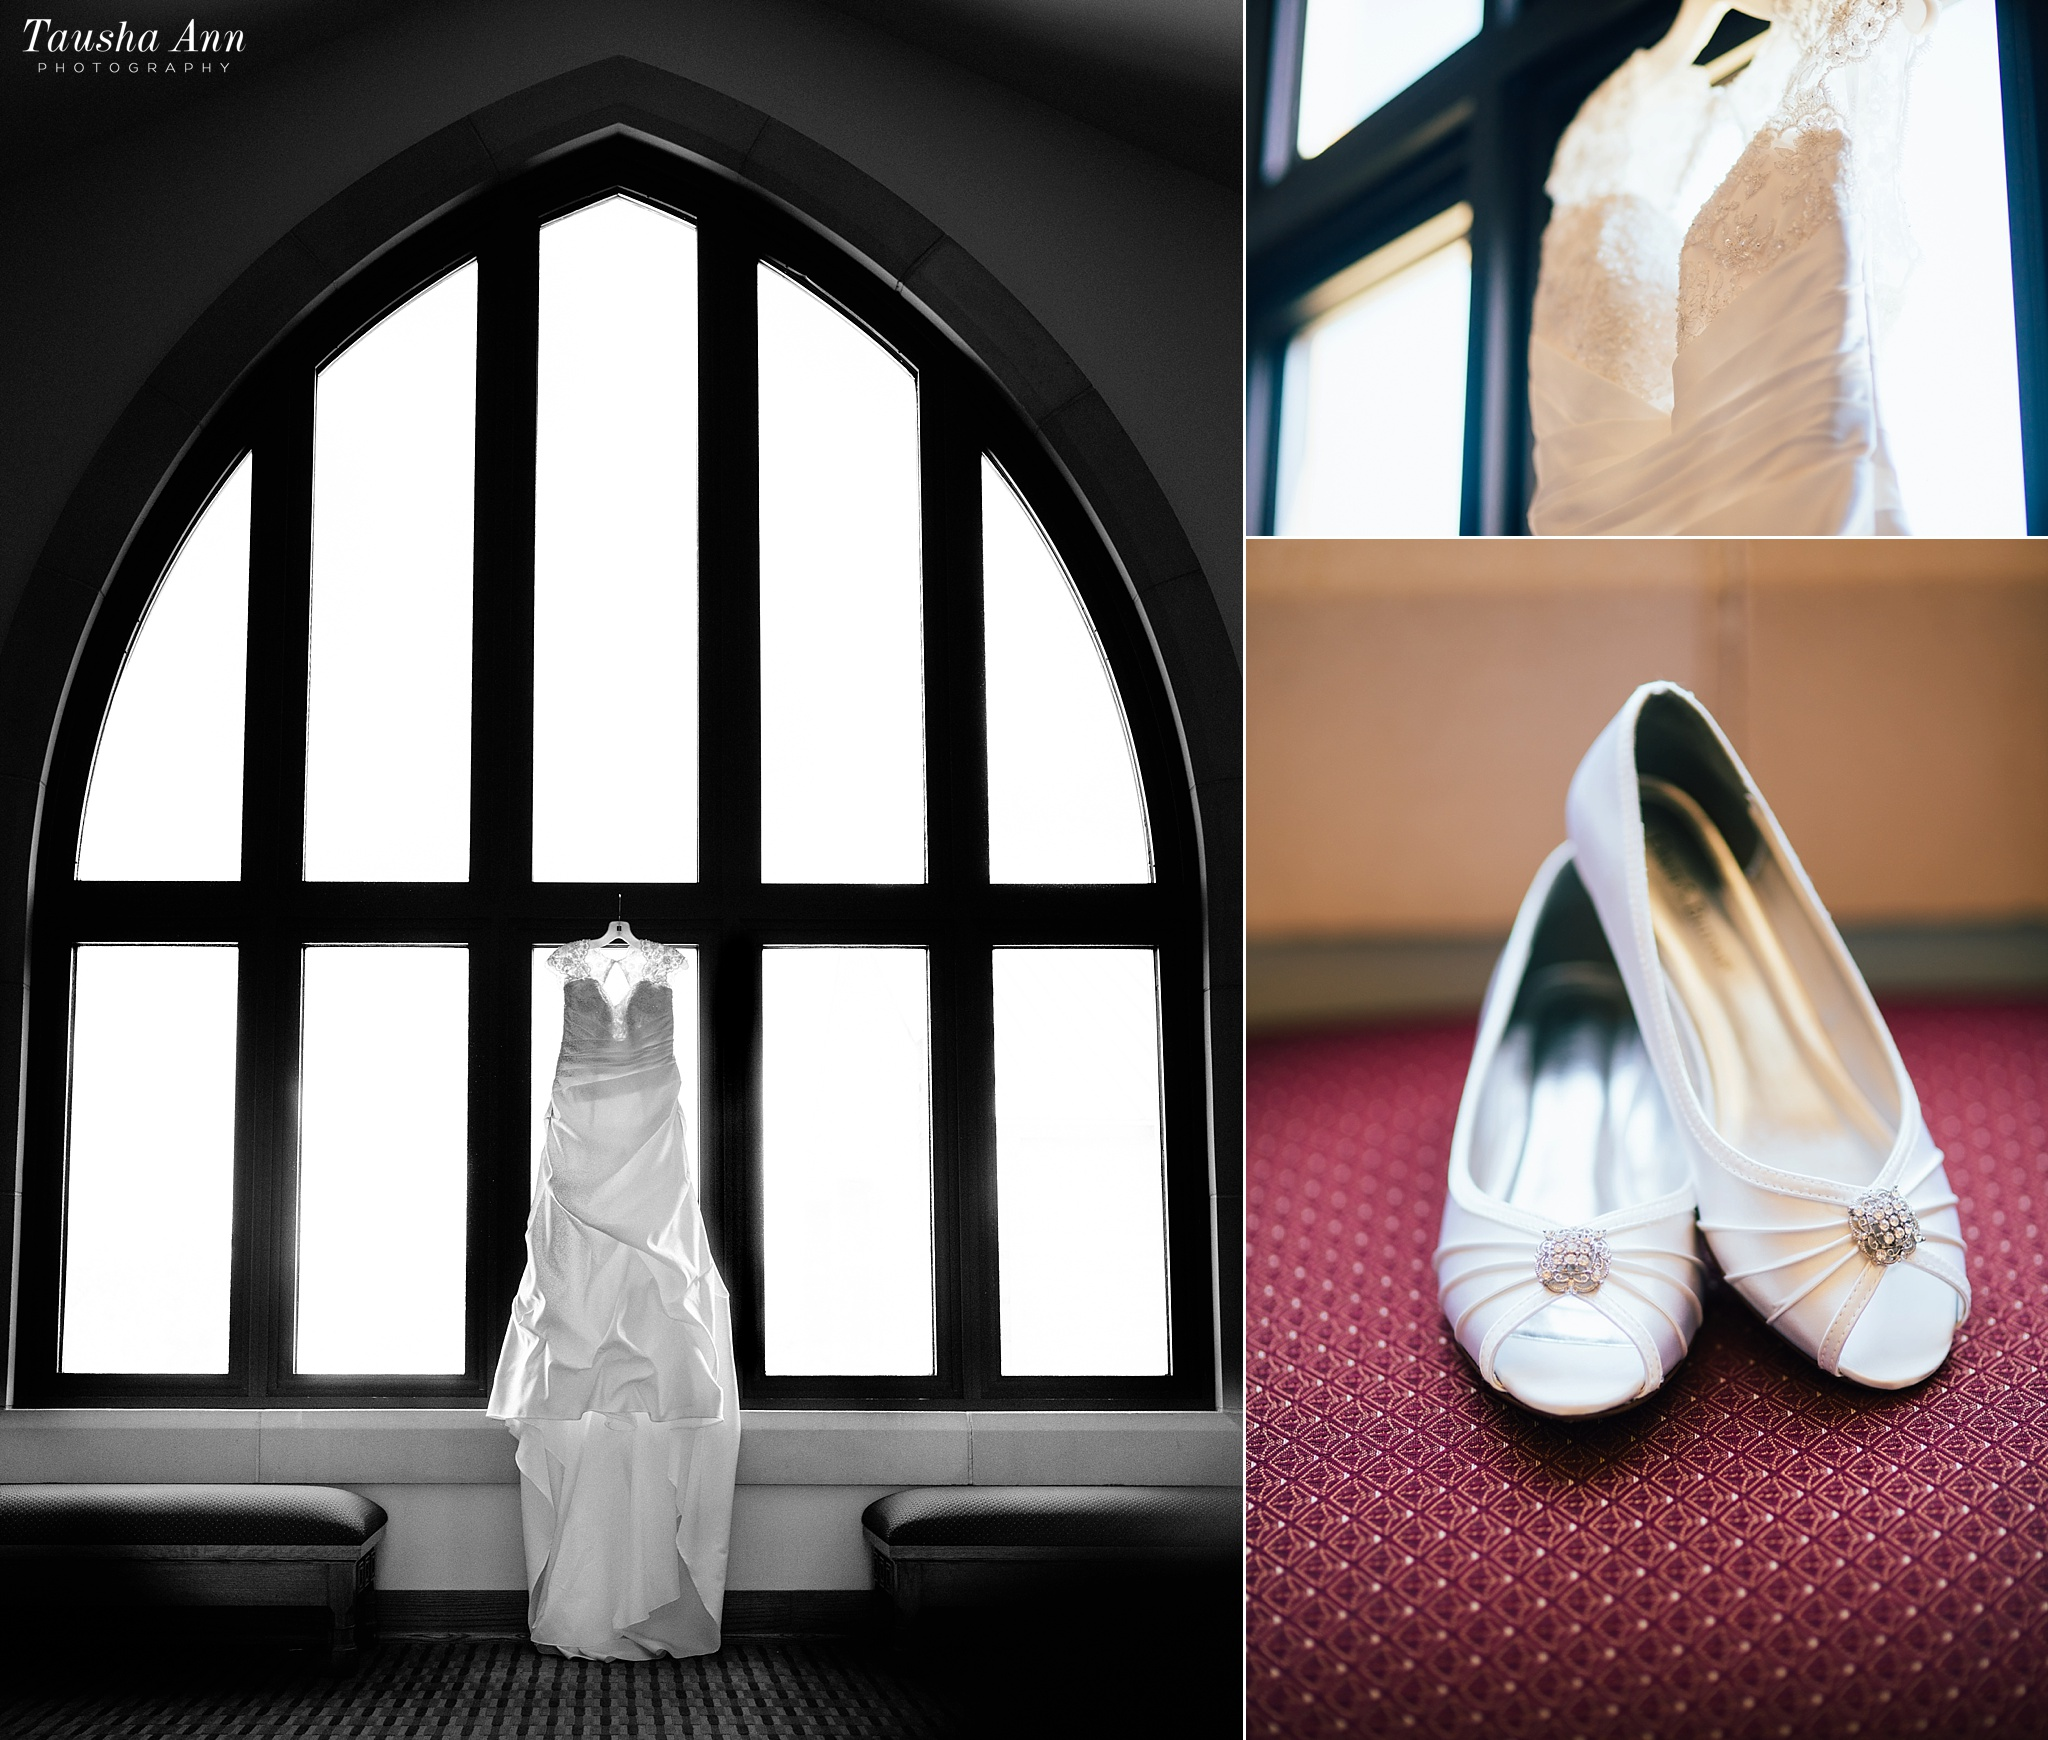 Dress hanging from Window, close up of Wedding Dress and Bride's shoes